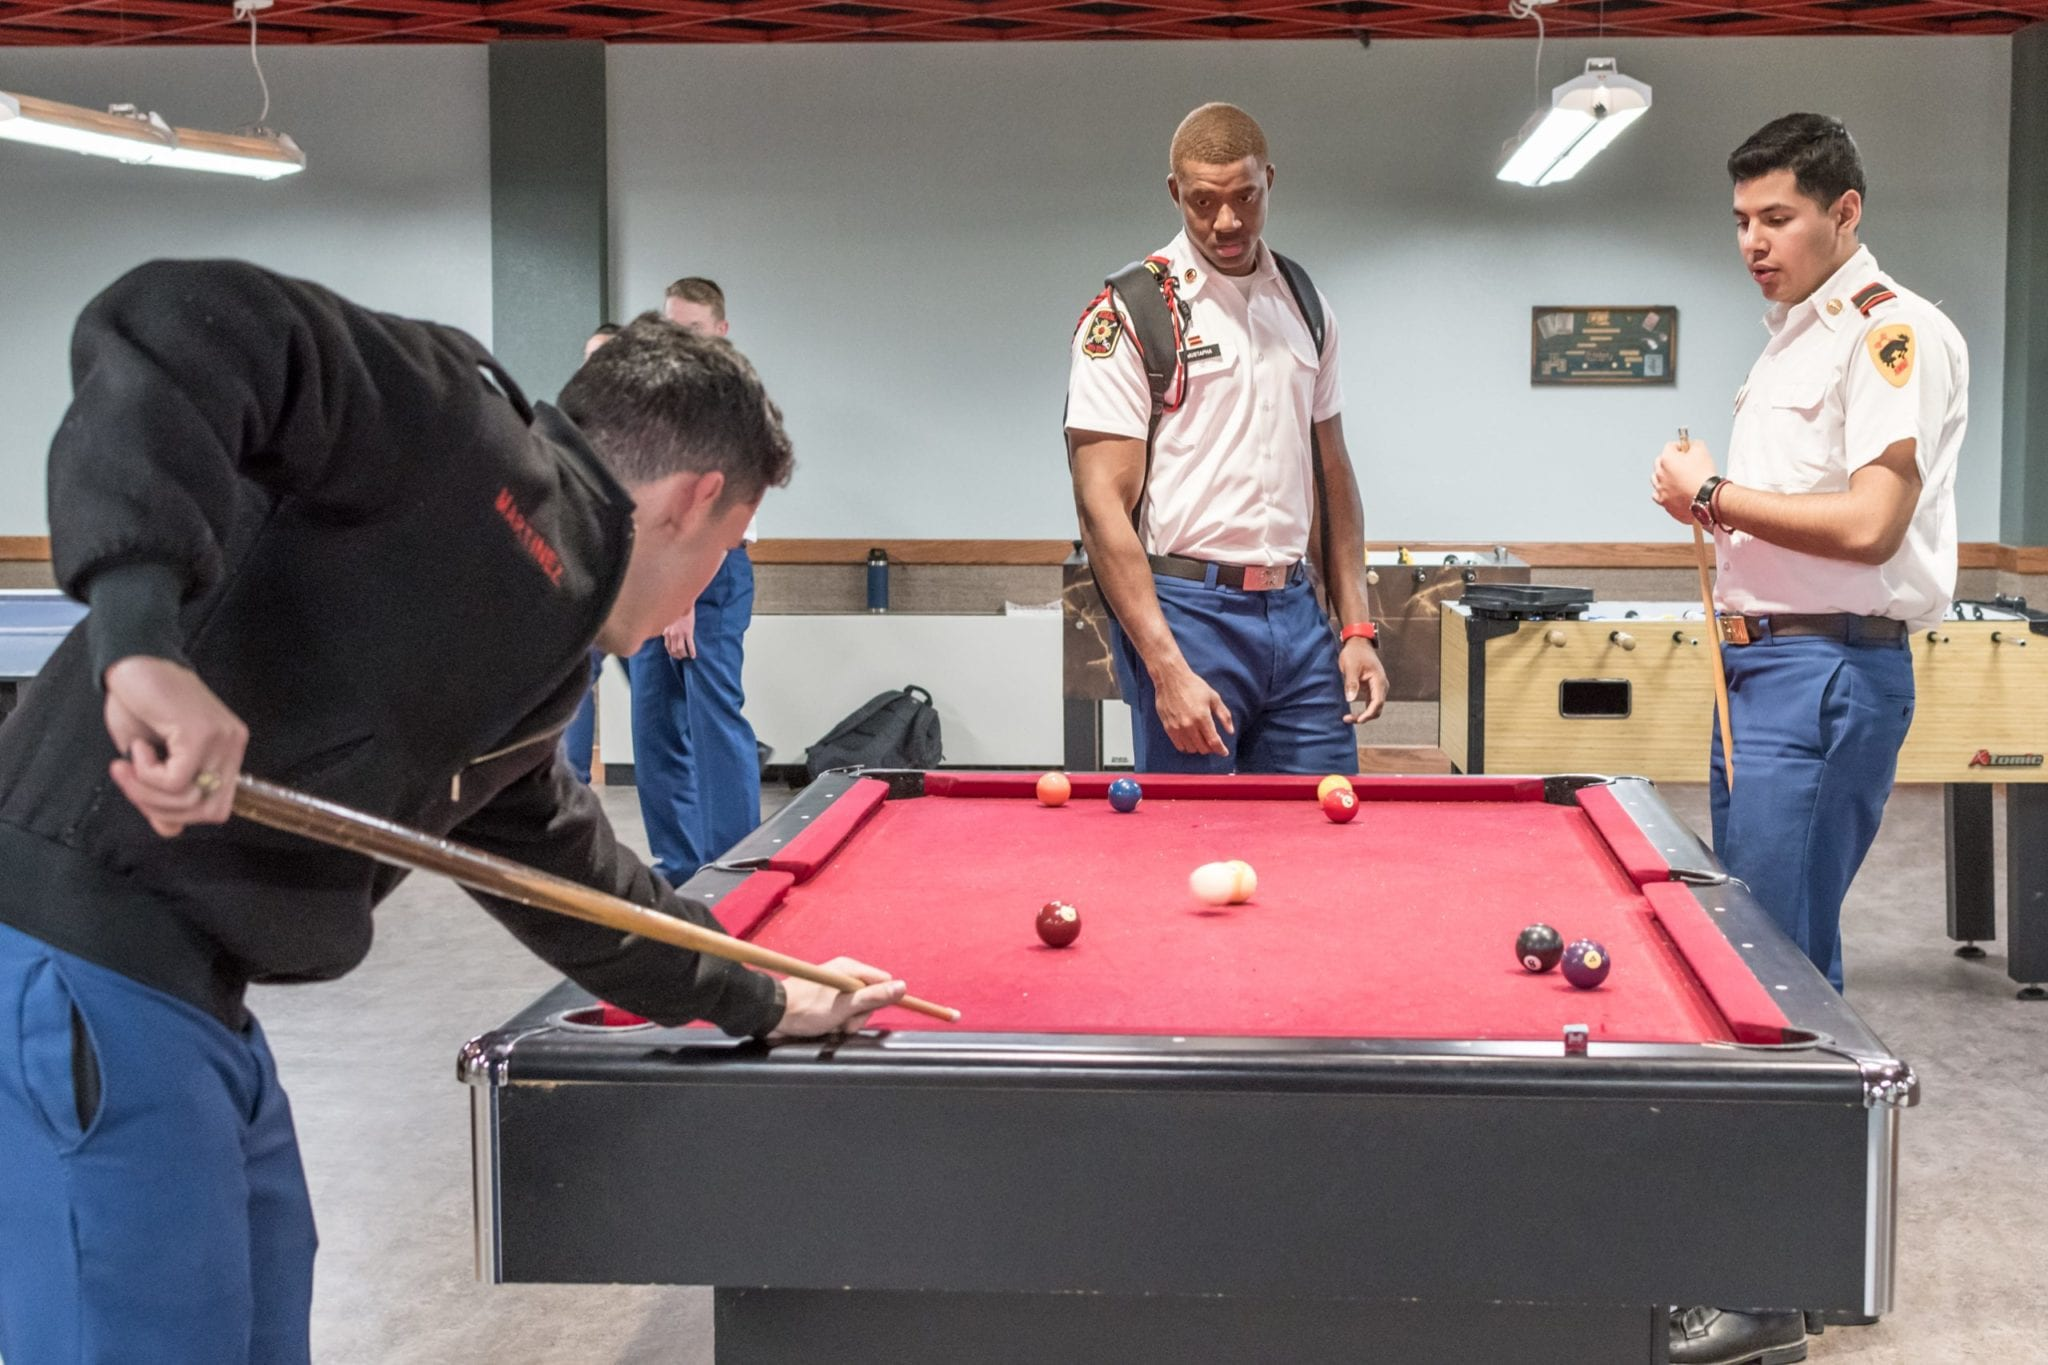 cadets playing billiards